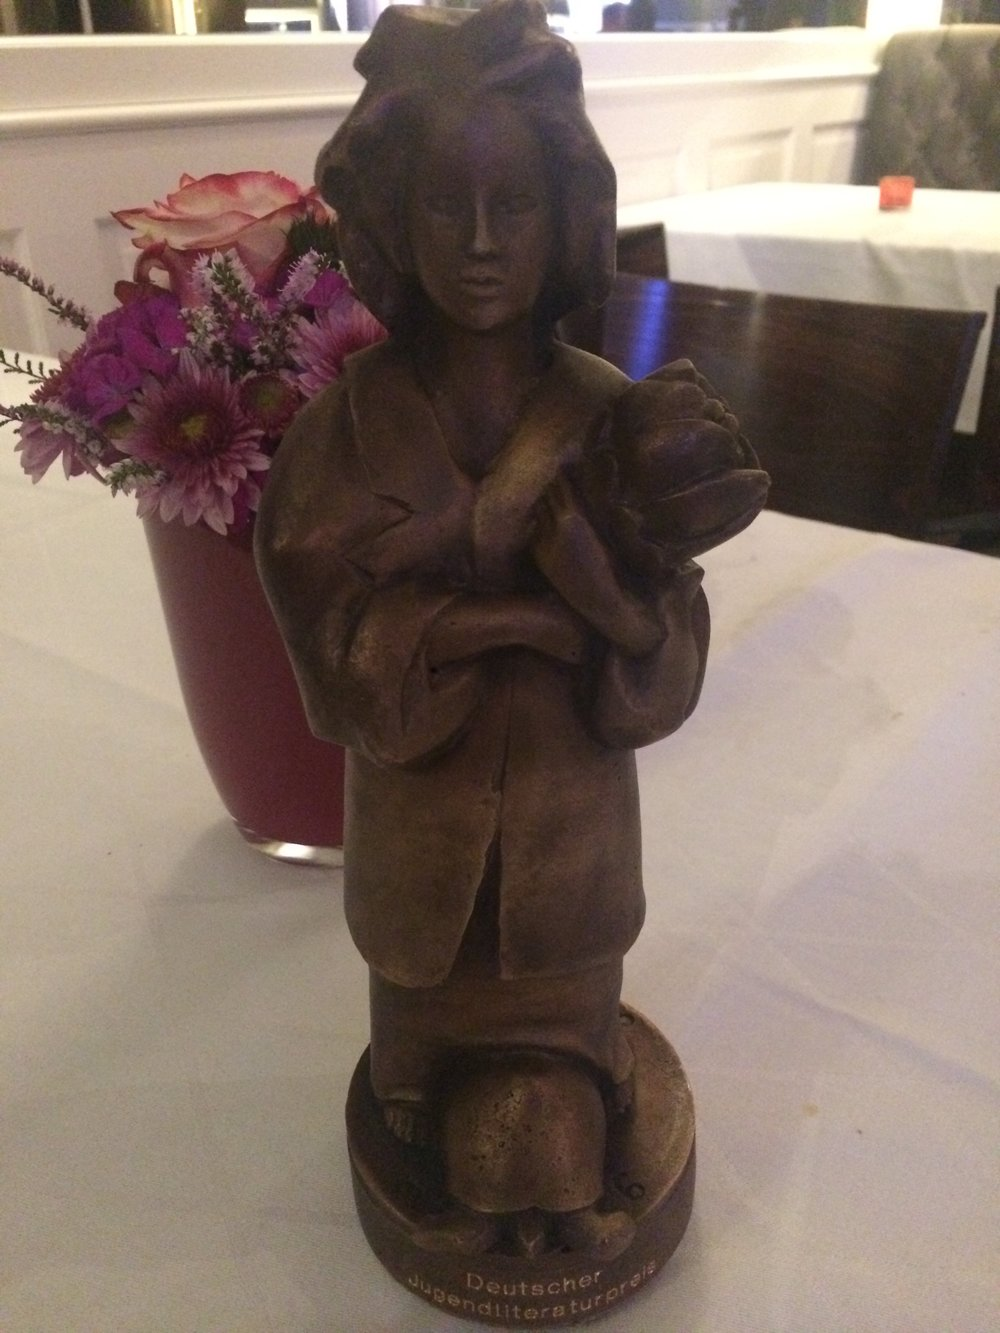 The prize winning statue of  MoMo